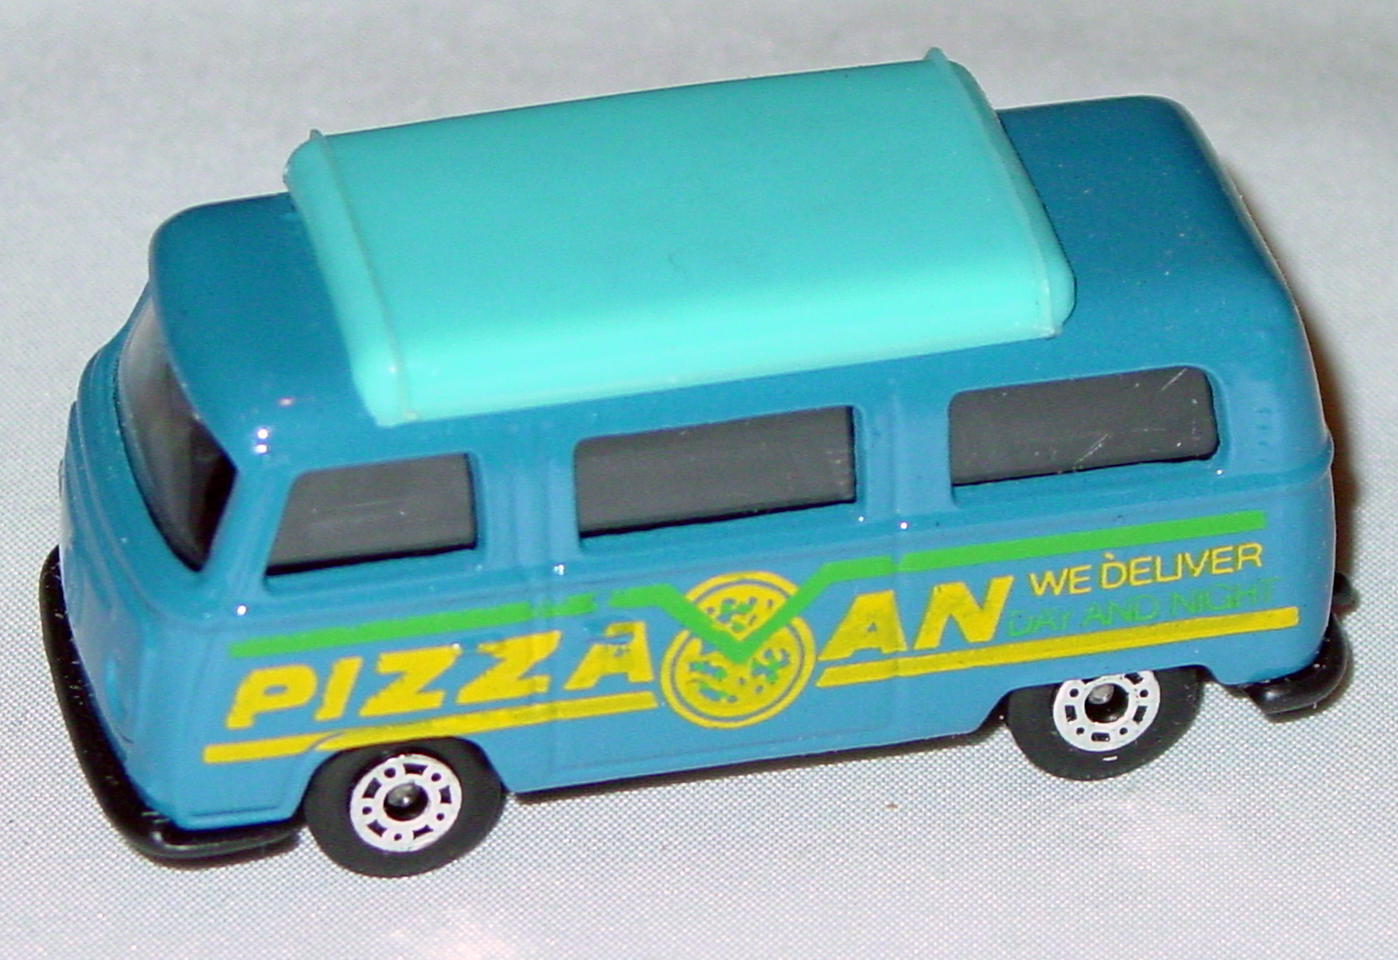 Hungarian 23 A 1 - Pizza Van Blue blue top black interior black yellow and green tampo